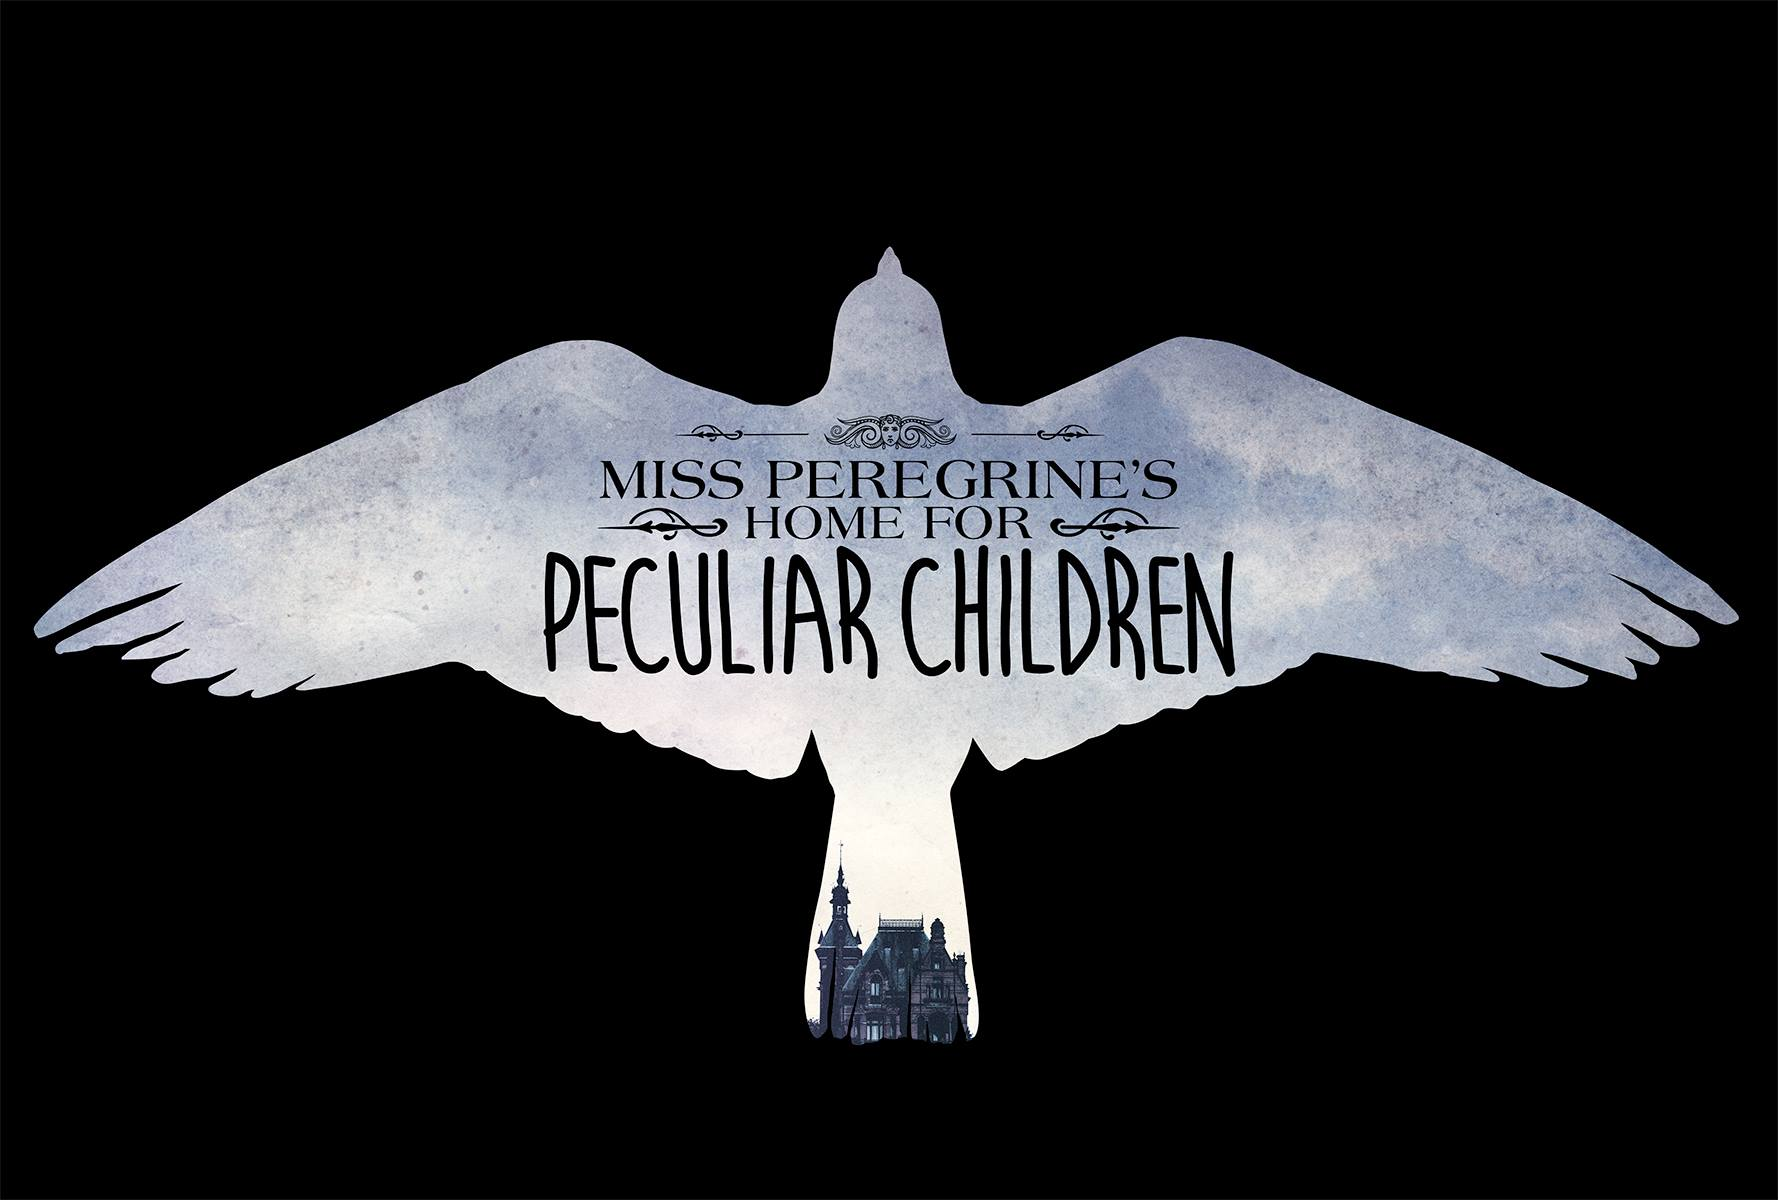 Miss Peregrine's Home for Peculiar Children Background